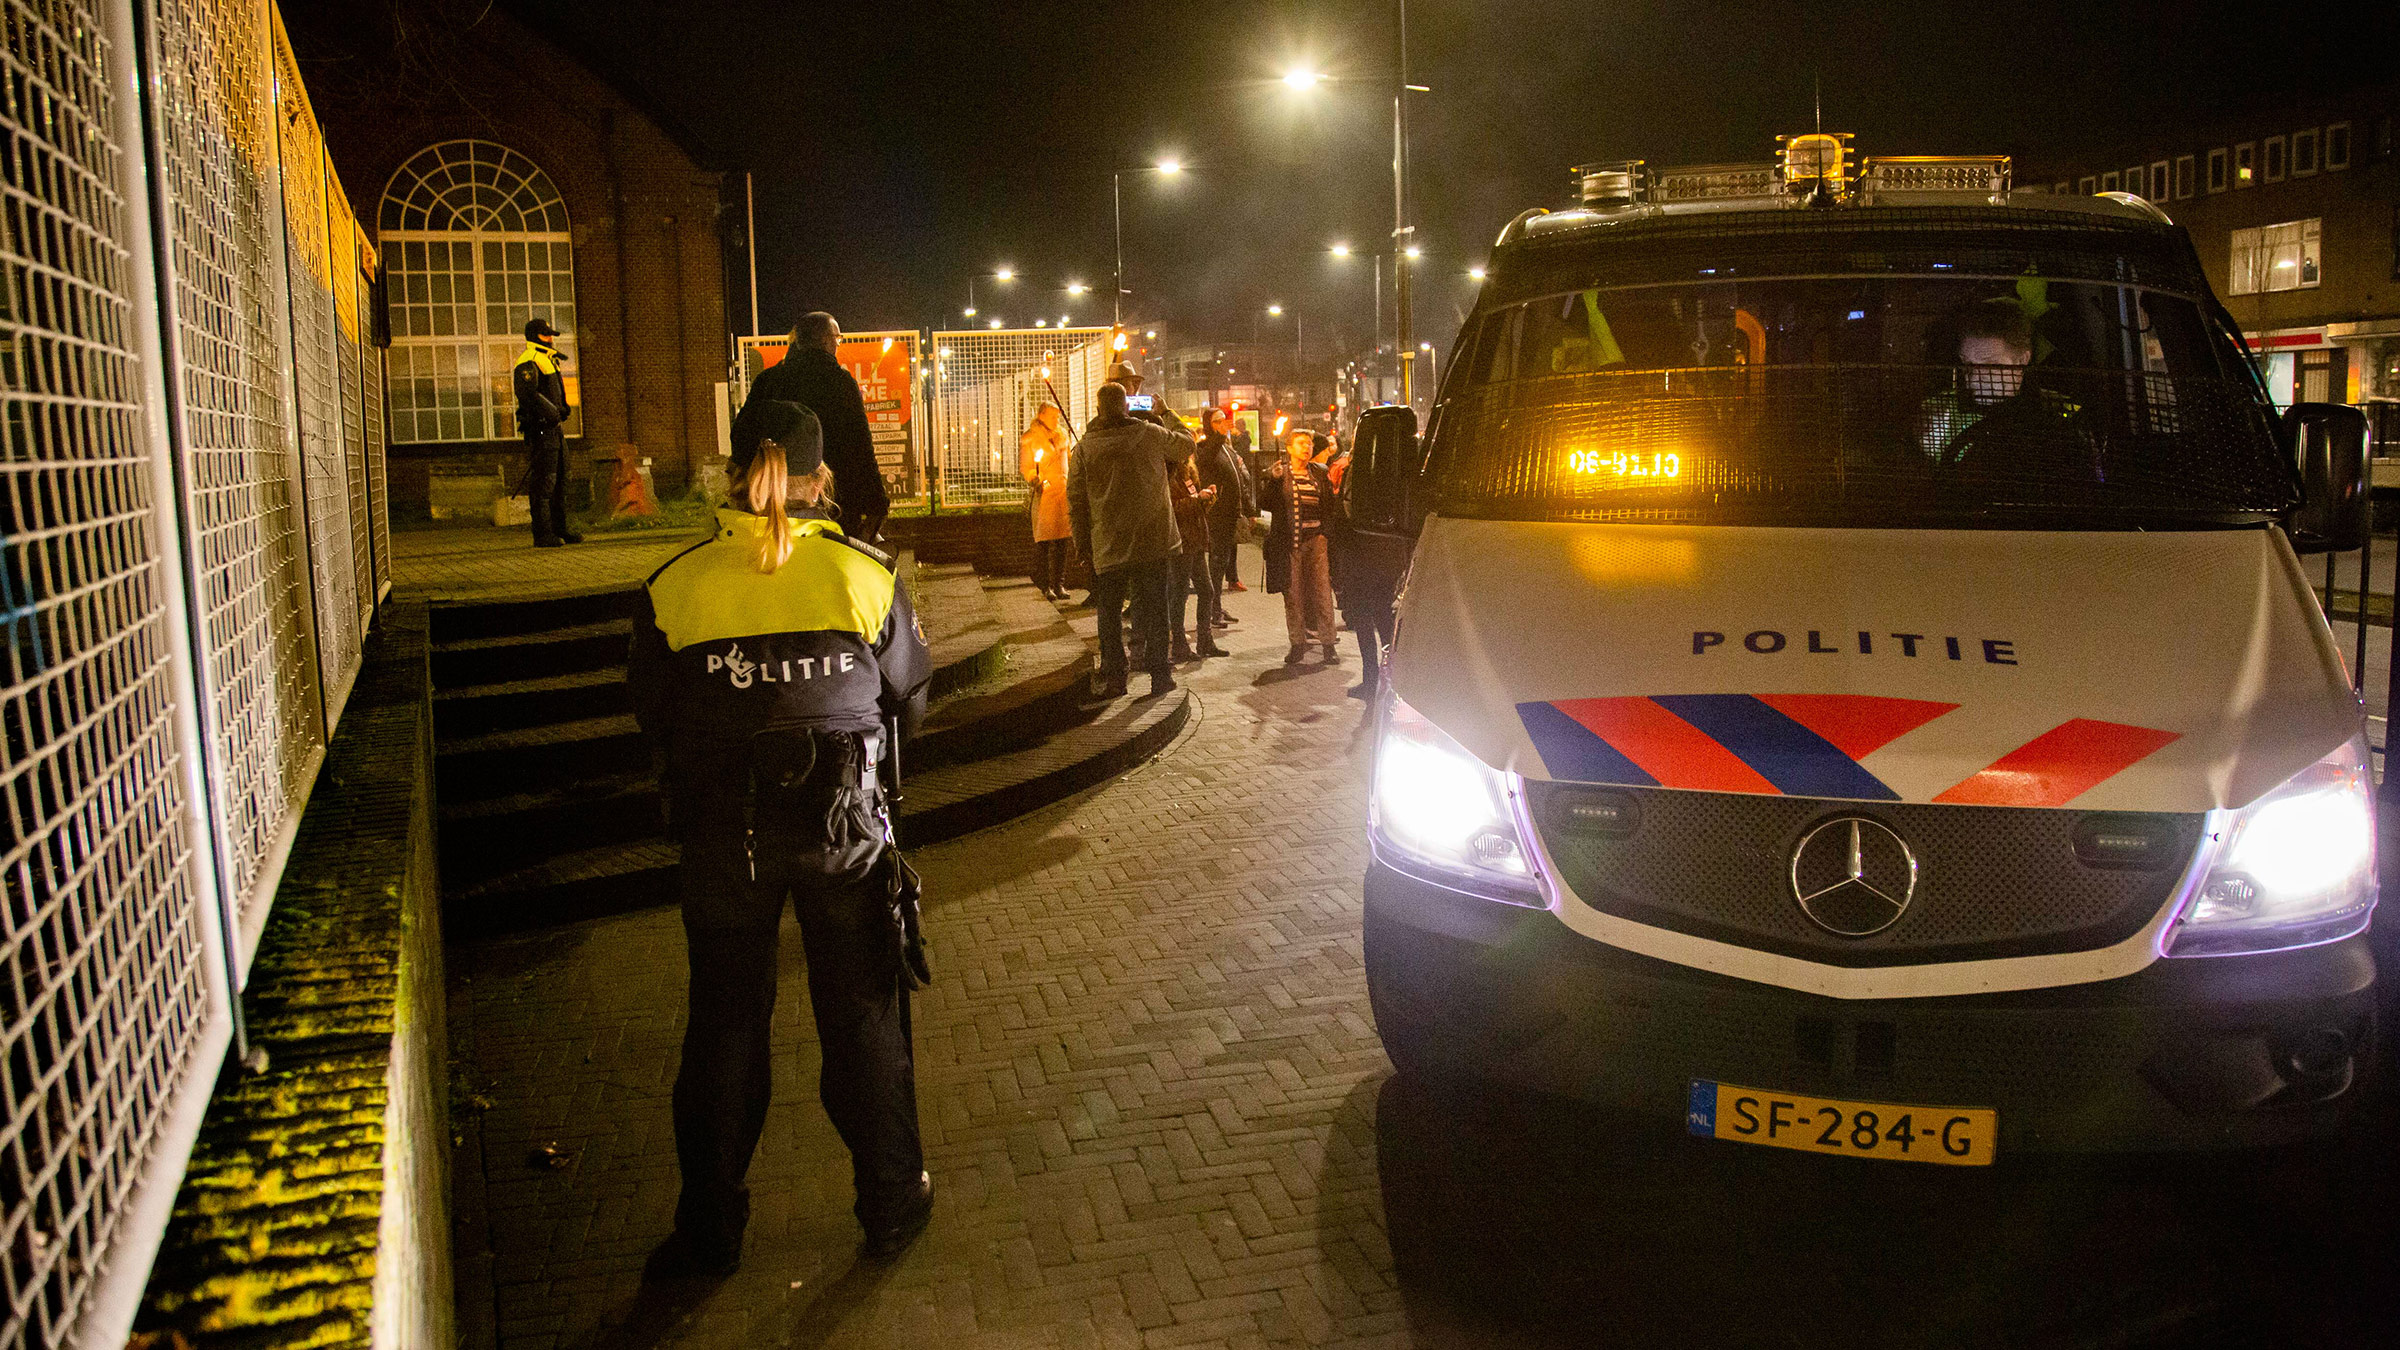 Police monitor demonstrators protesting against Covid-19 lockdown and curfew measures in Tilburg, Netherlands, on February 5.